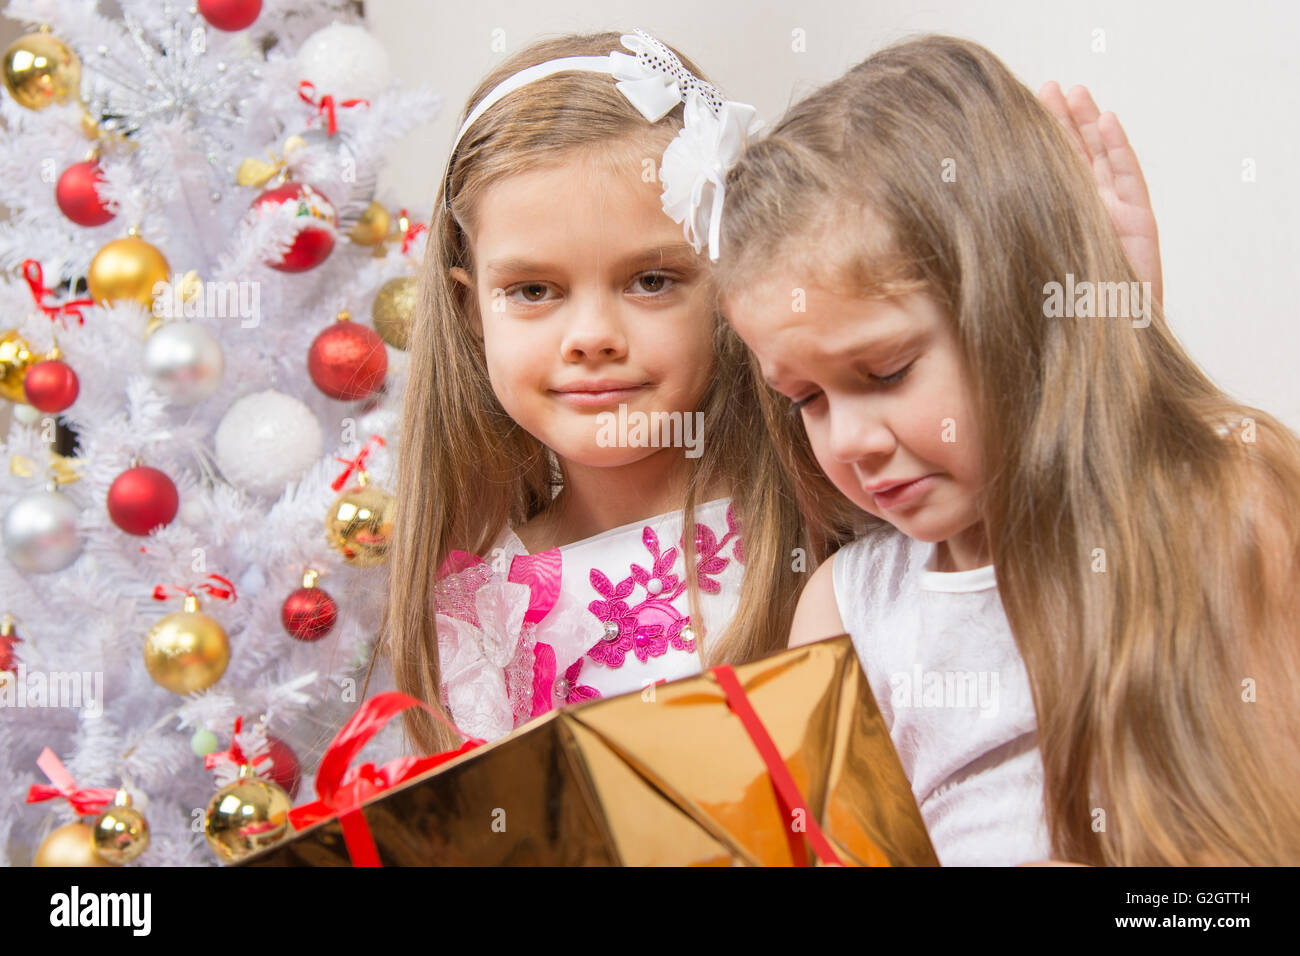 The girl gave the wrong gift, another girl comforting her - Stock Image